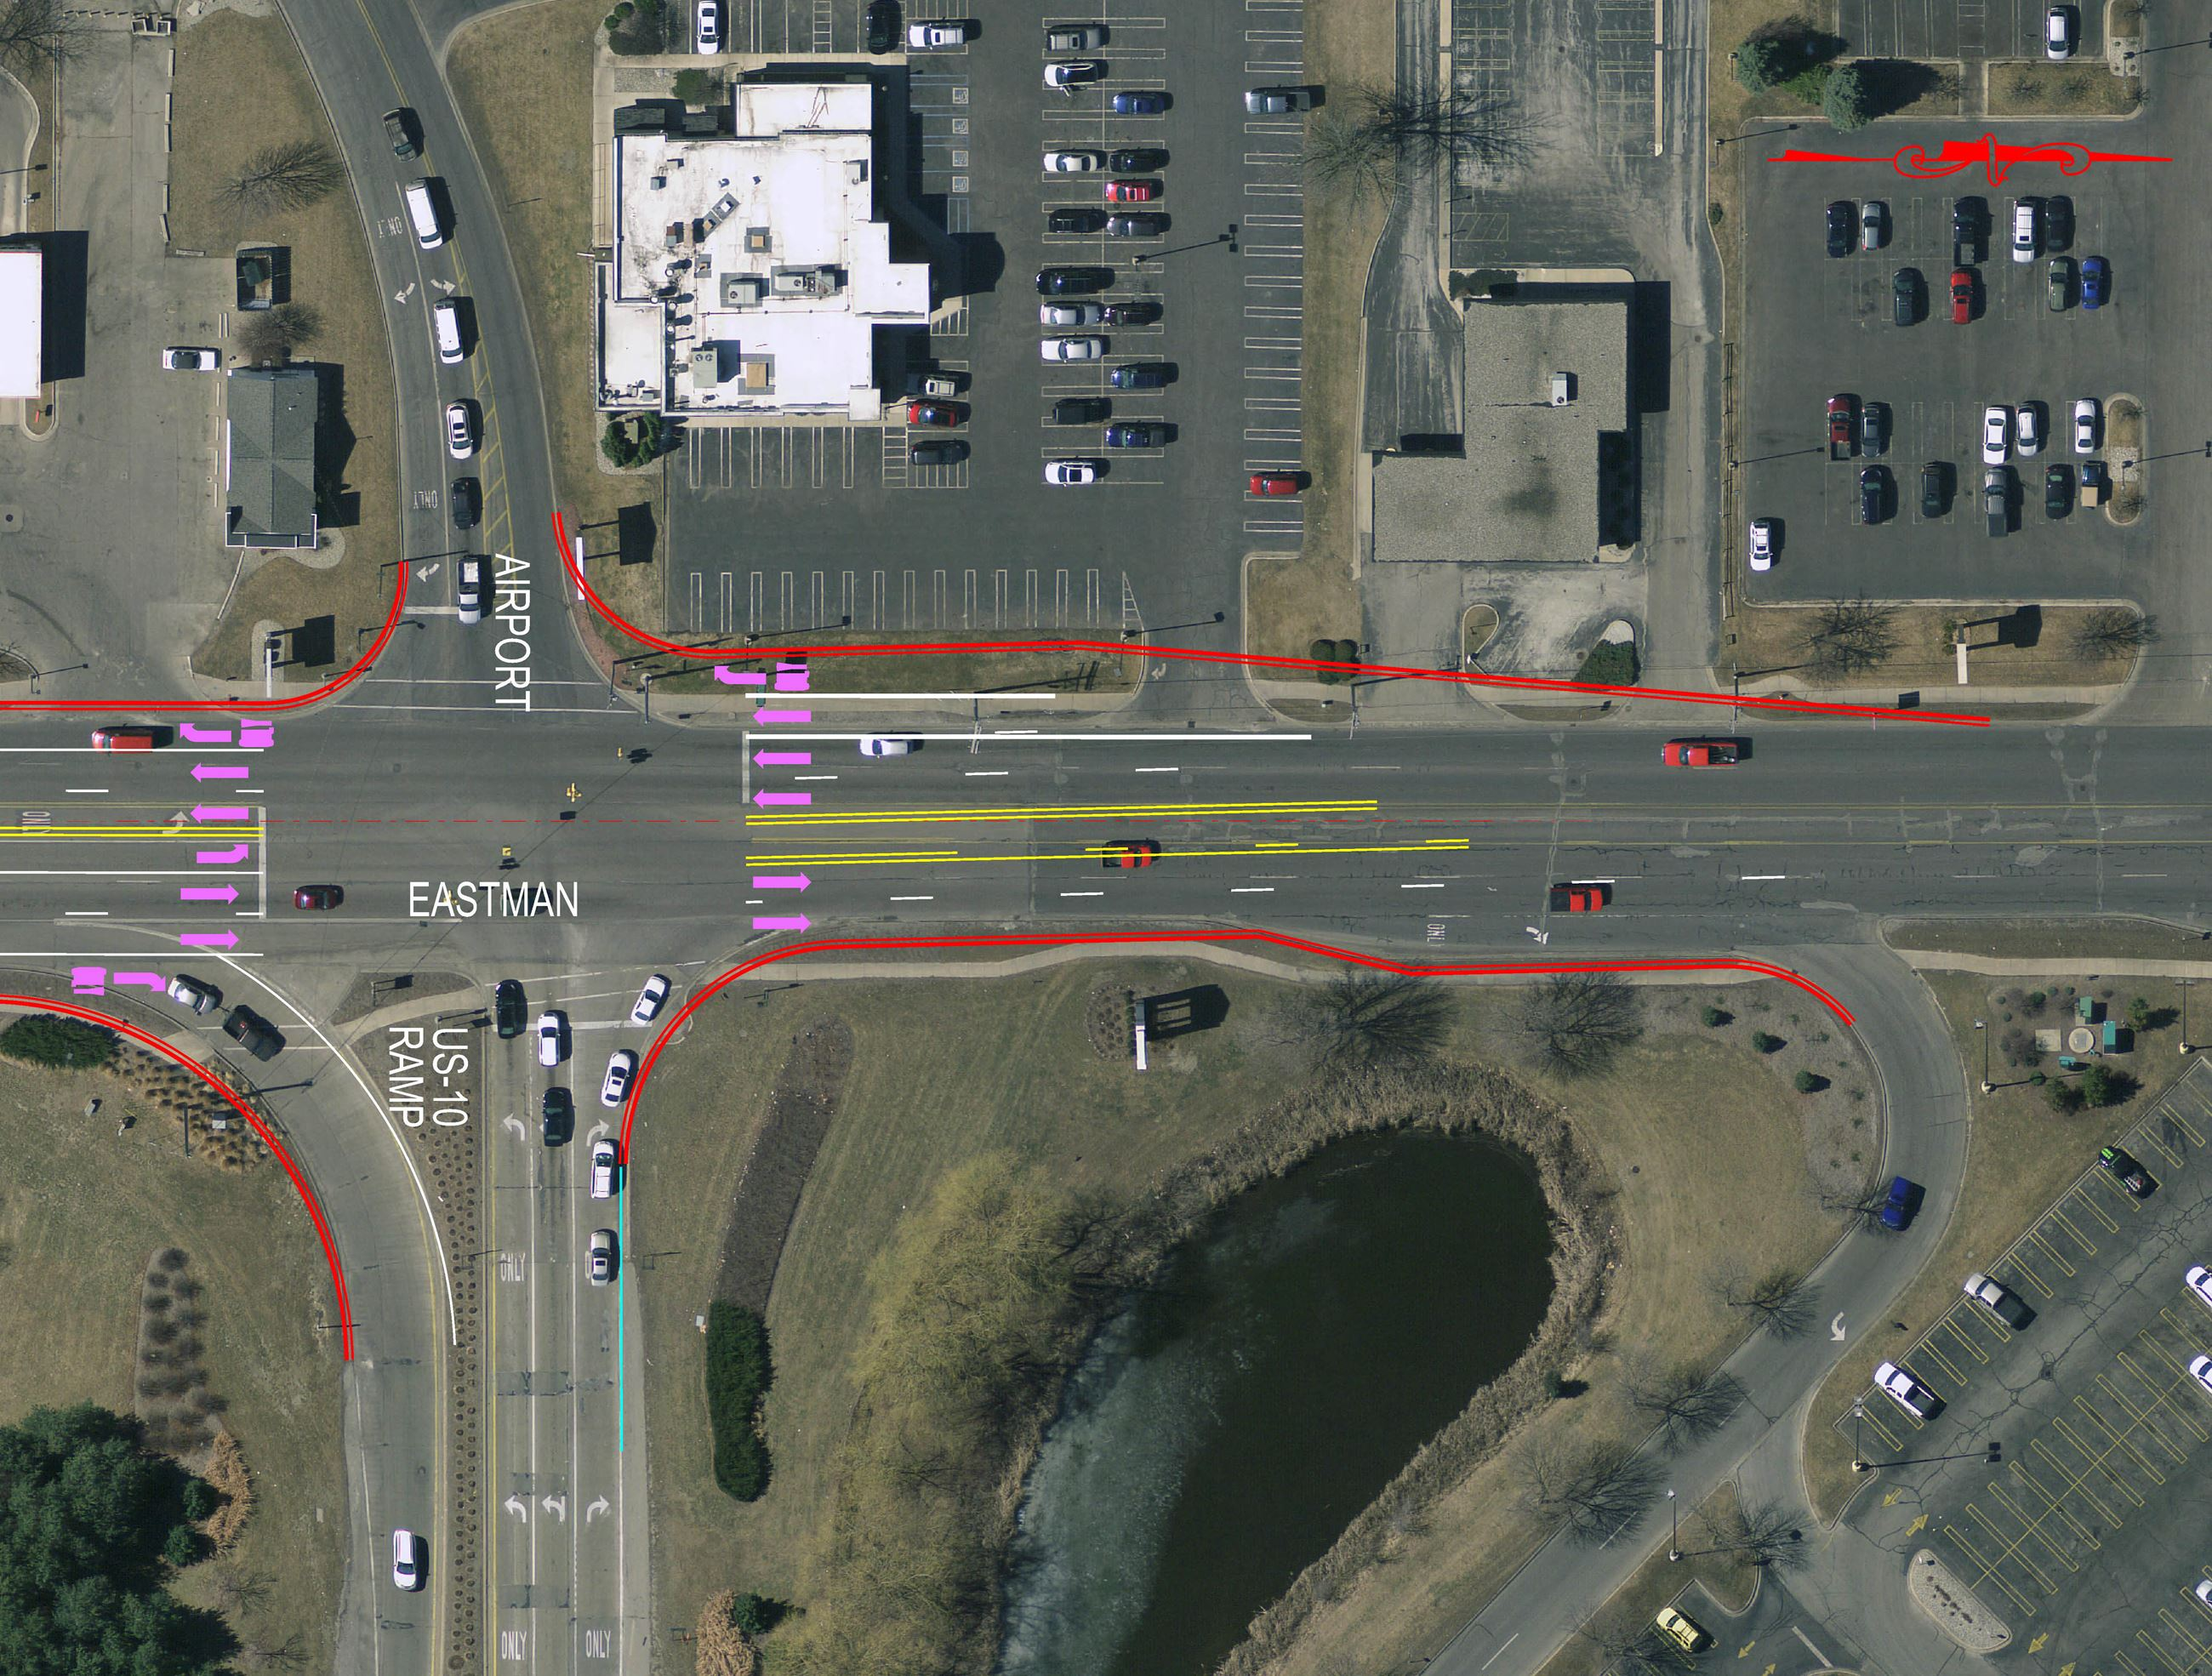 An aerial view of Eastman Avenue at Airport Road with colored delineations for turn lanes